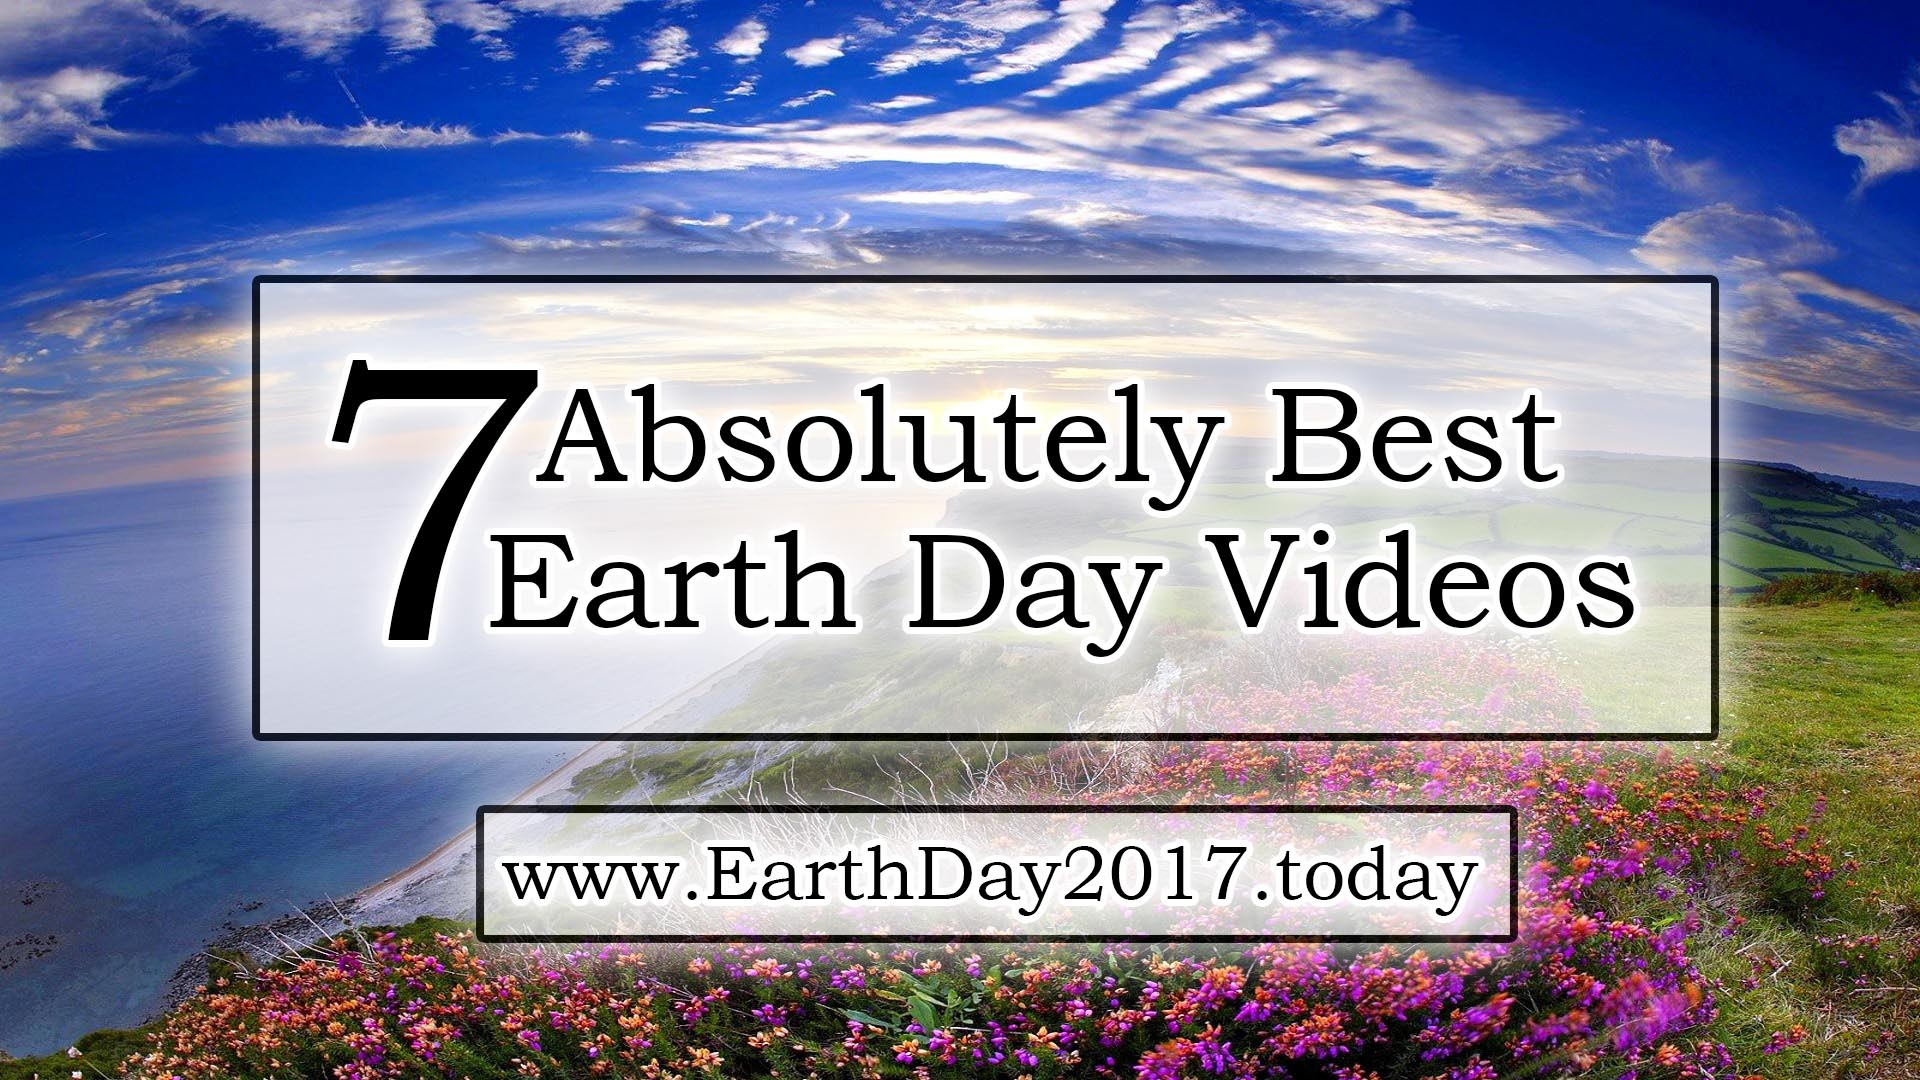 7 Absolutely Best Earth Day Videos